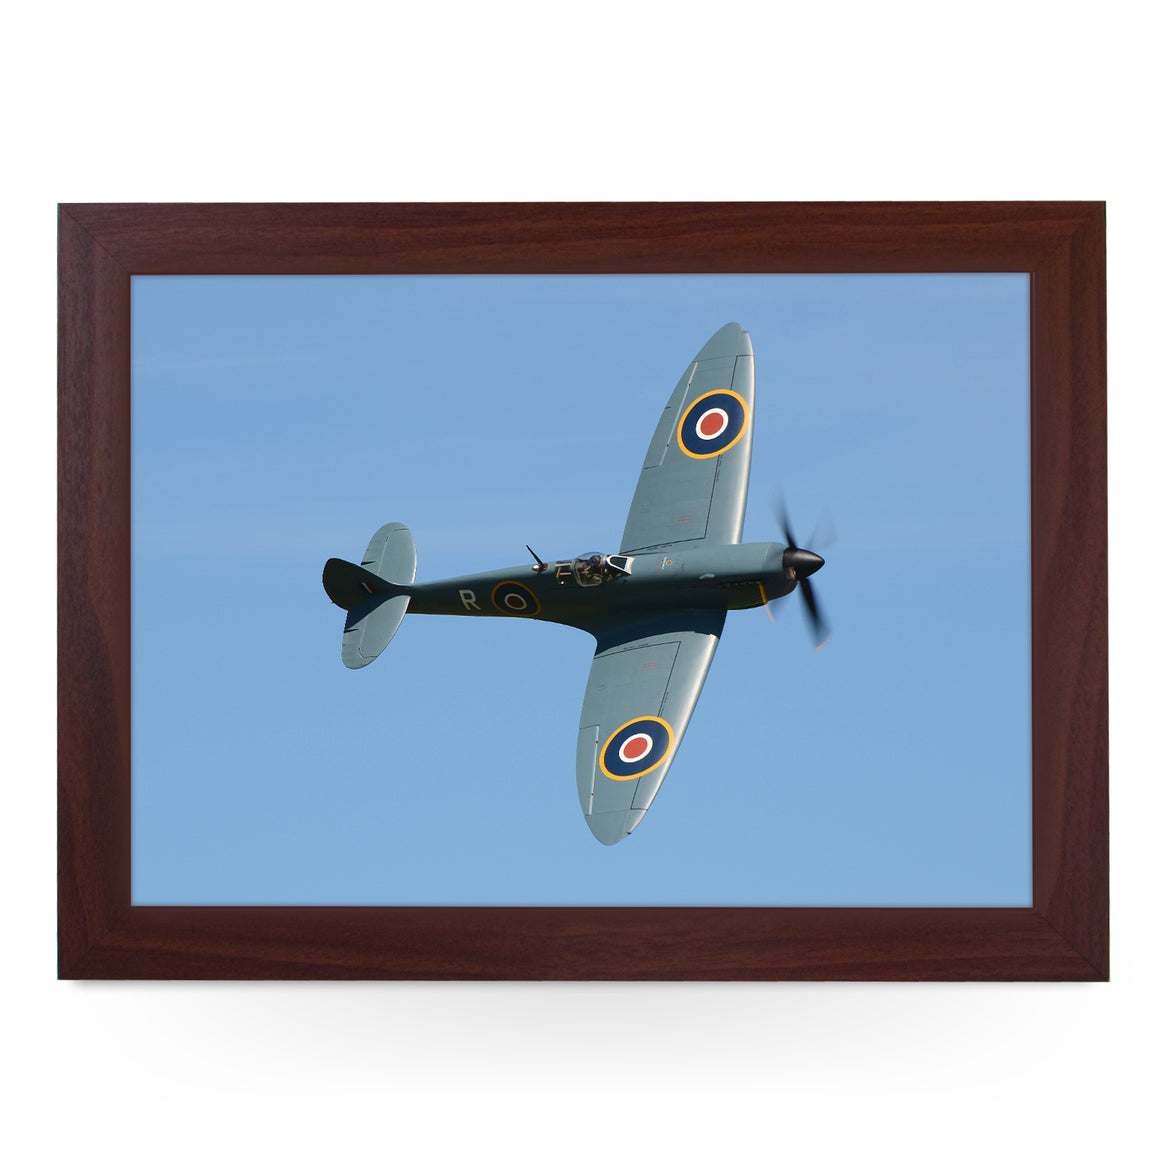 Supermarine Spitfire Plane Lap Tray - AD14390